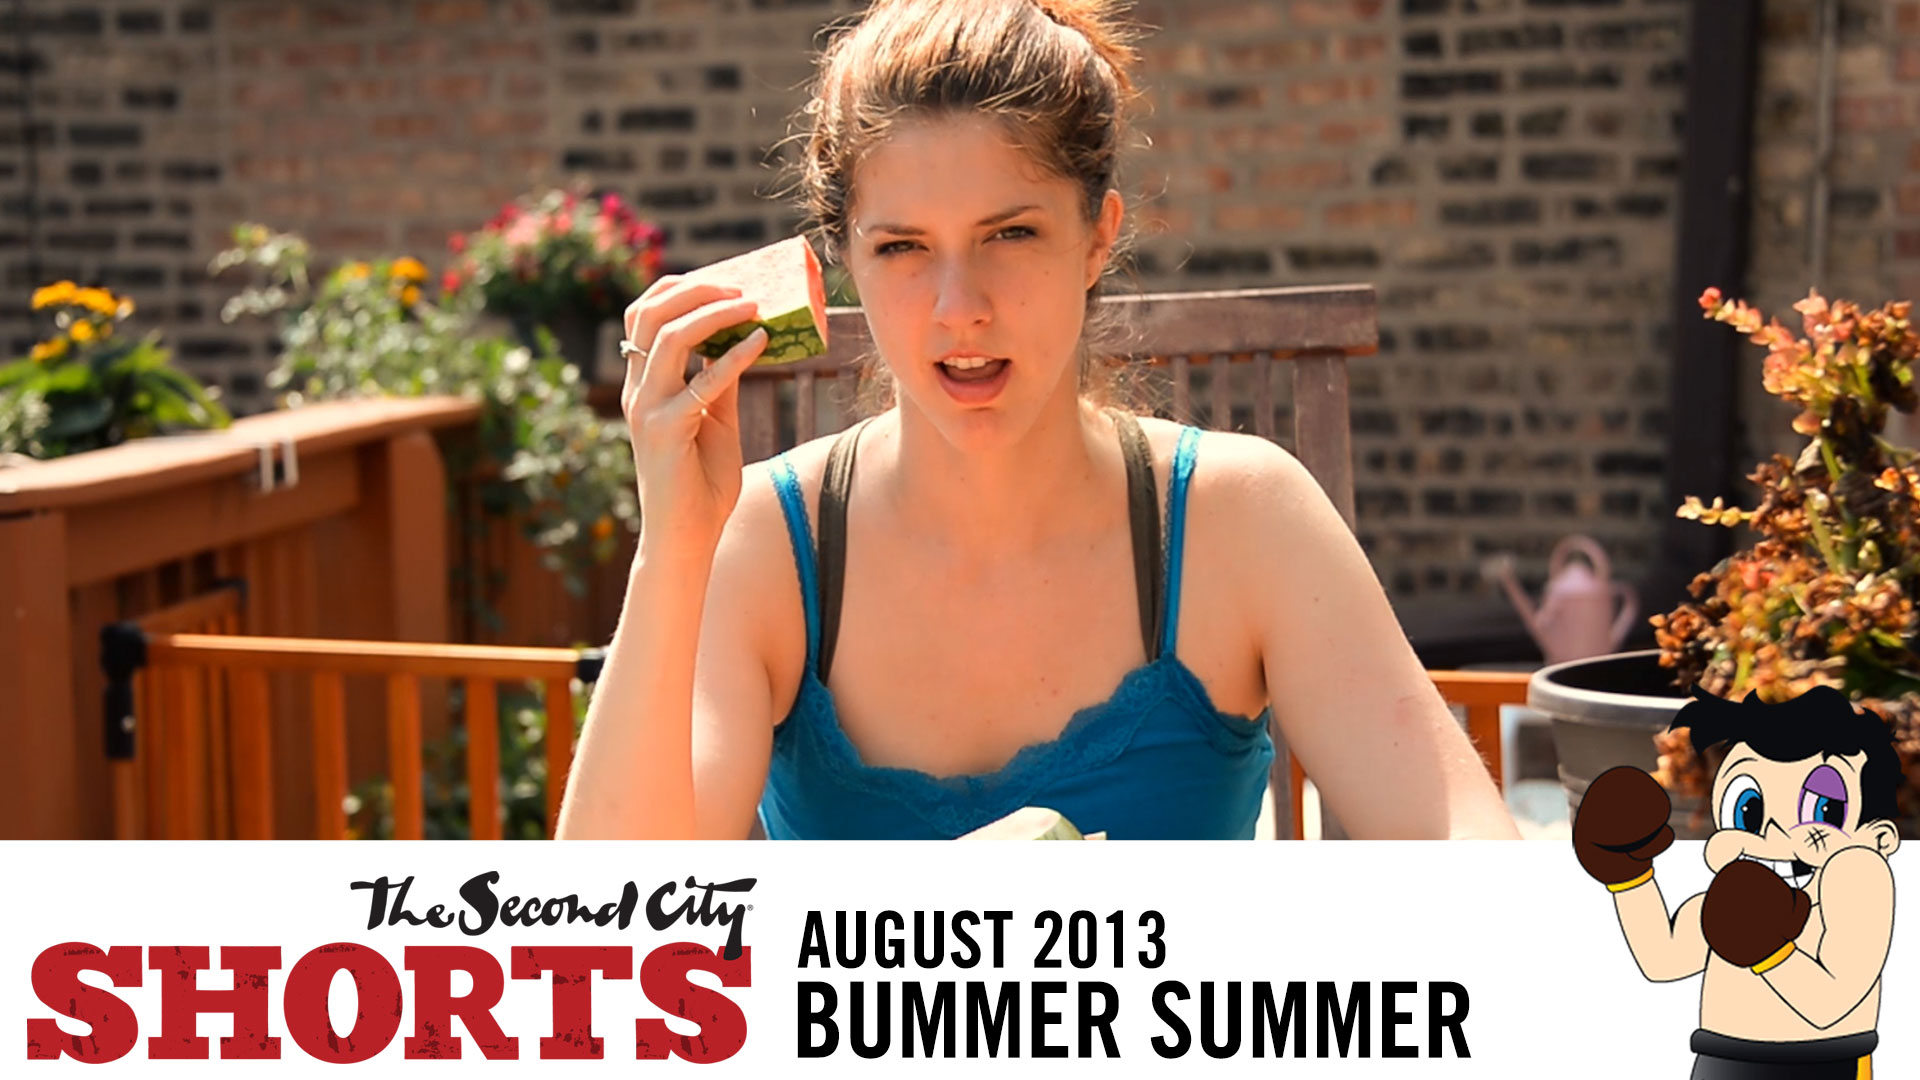 Bummer Summer - Second City Shorts Winner 8/13